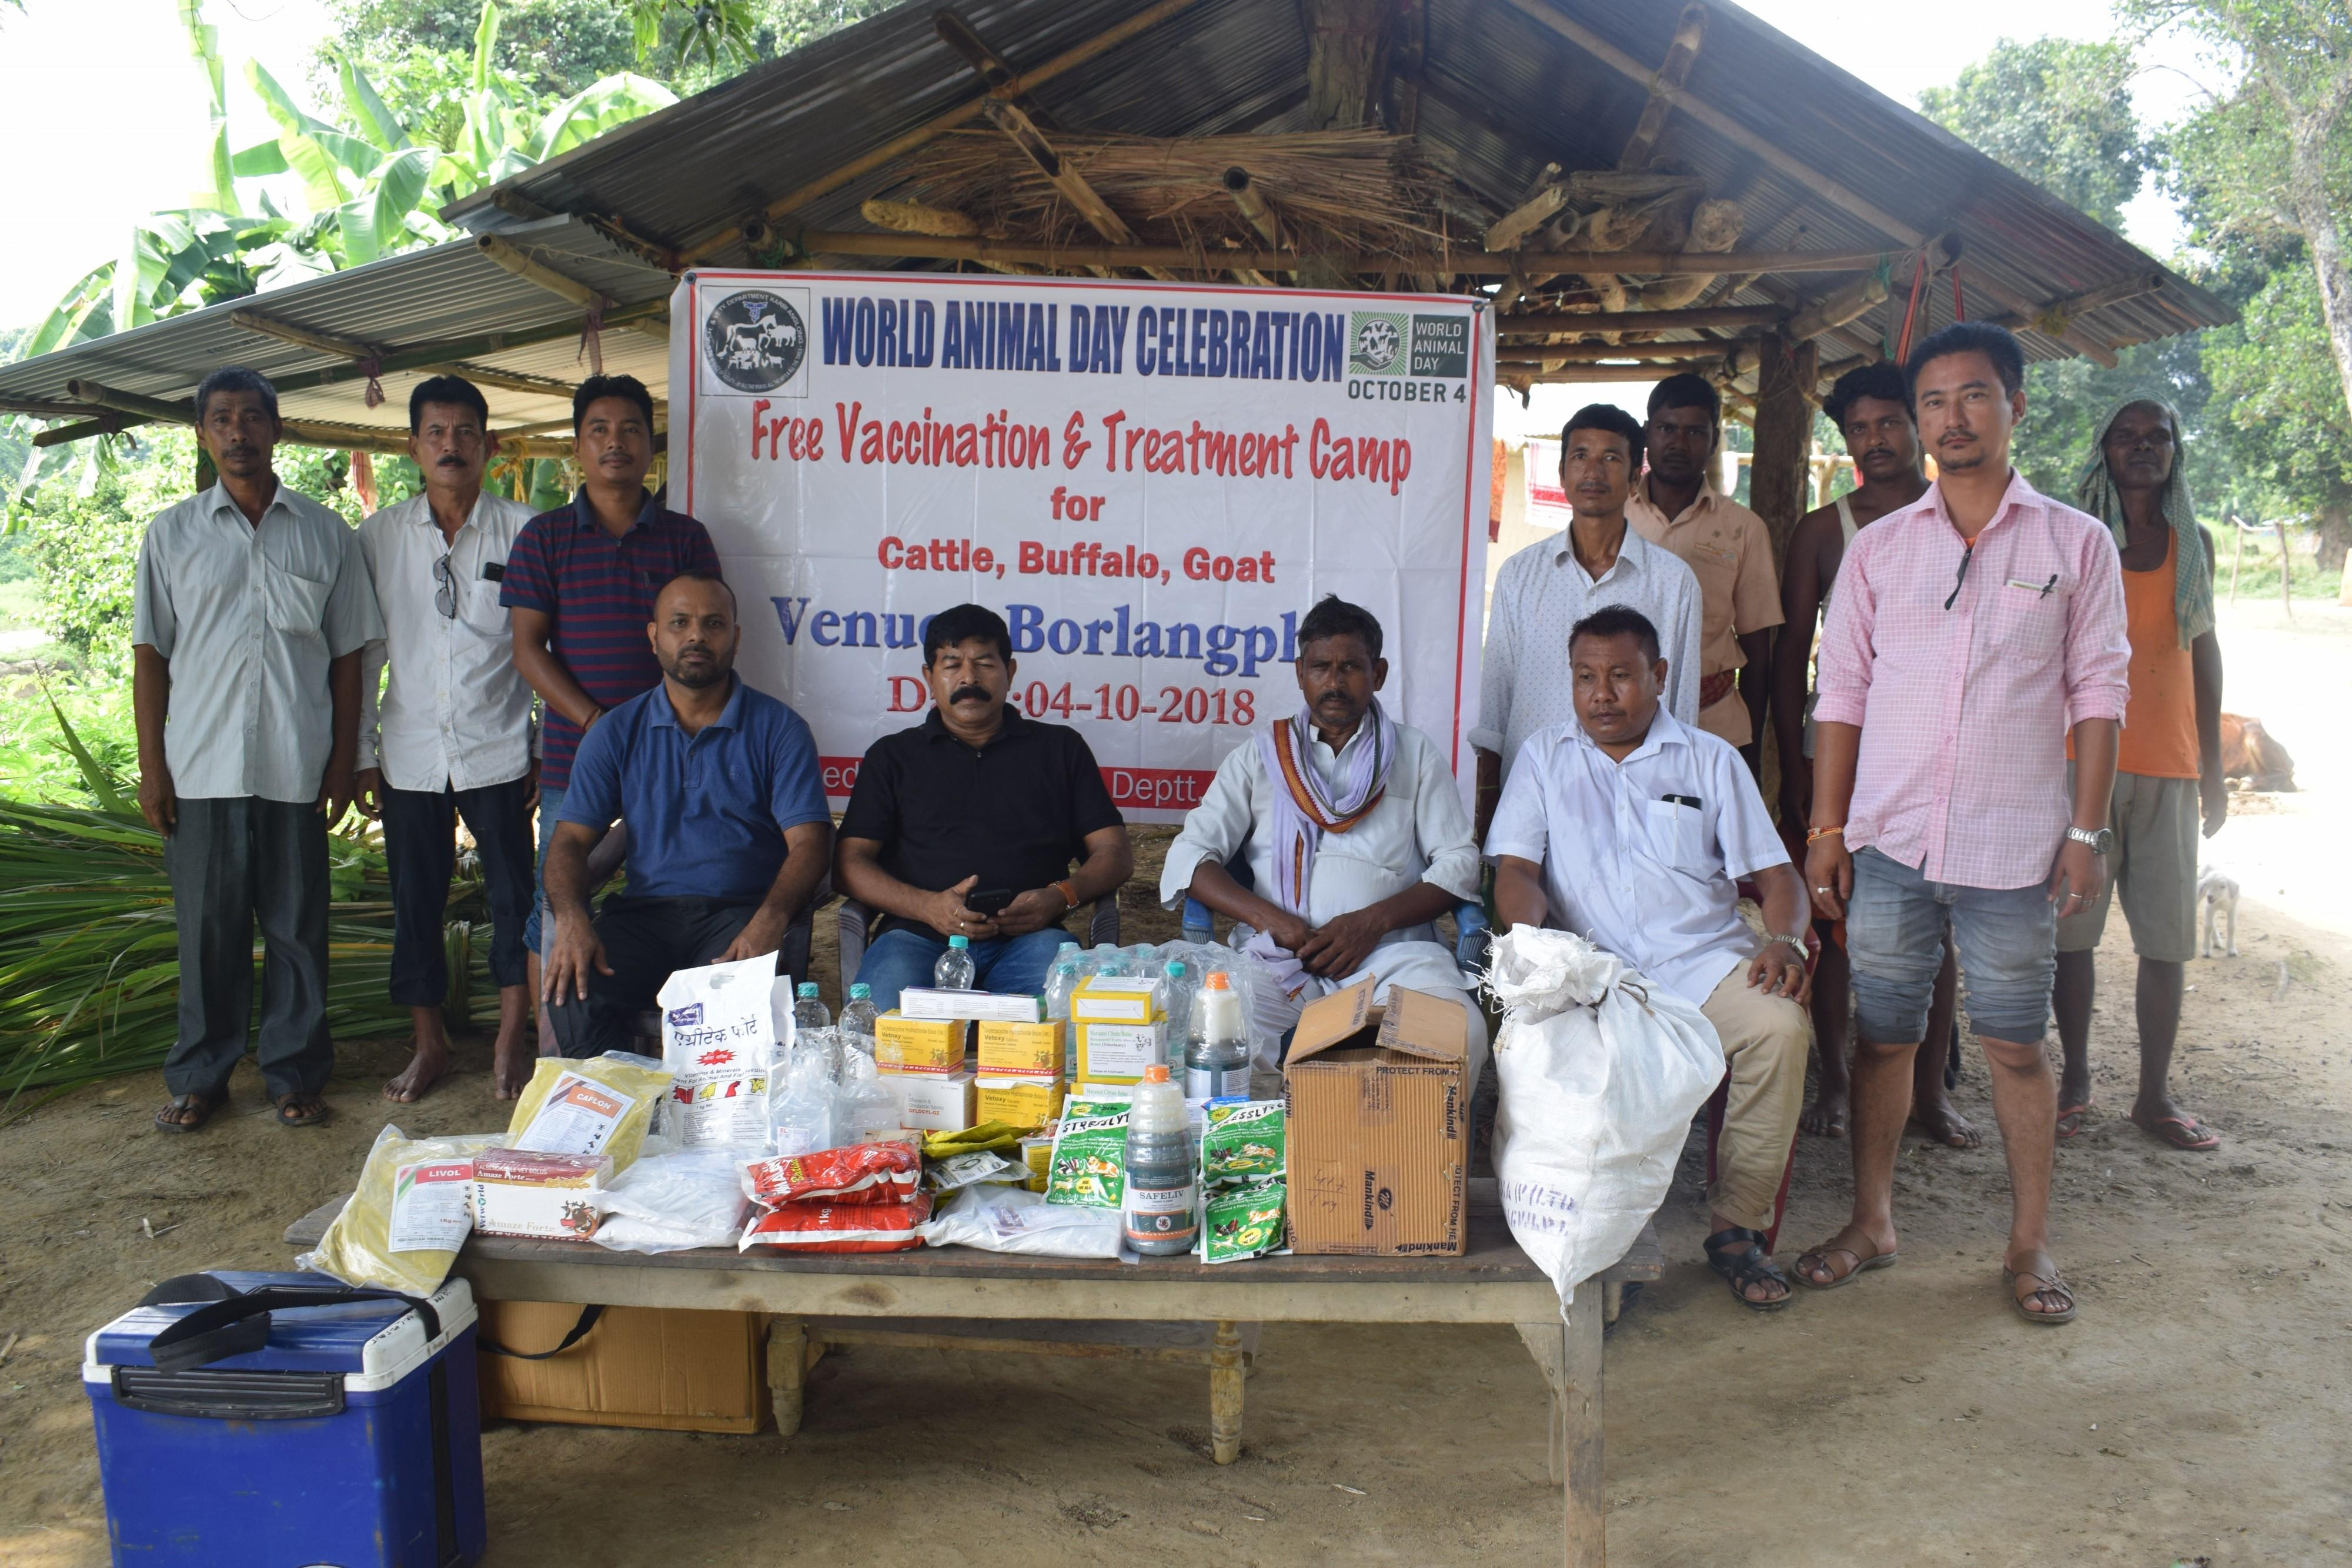 World Animal Day Celebration, Animal Husbandry and Veterinary Department, Karbi Anglong, Assam